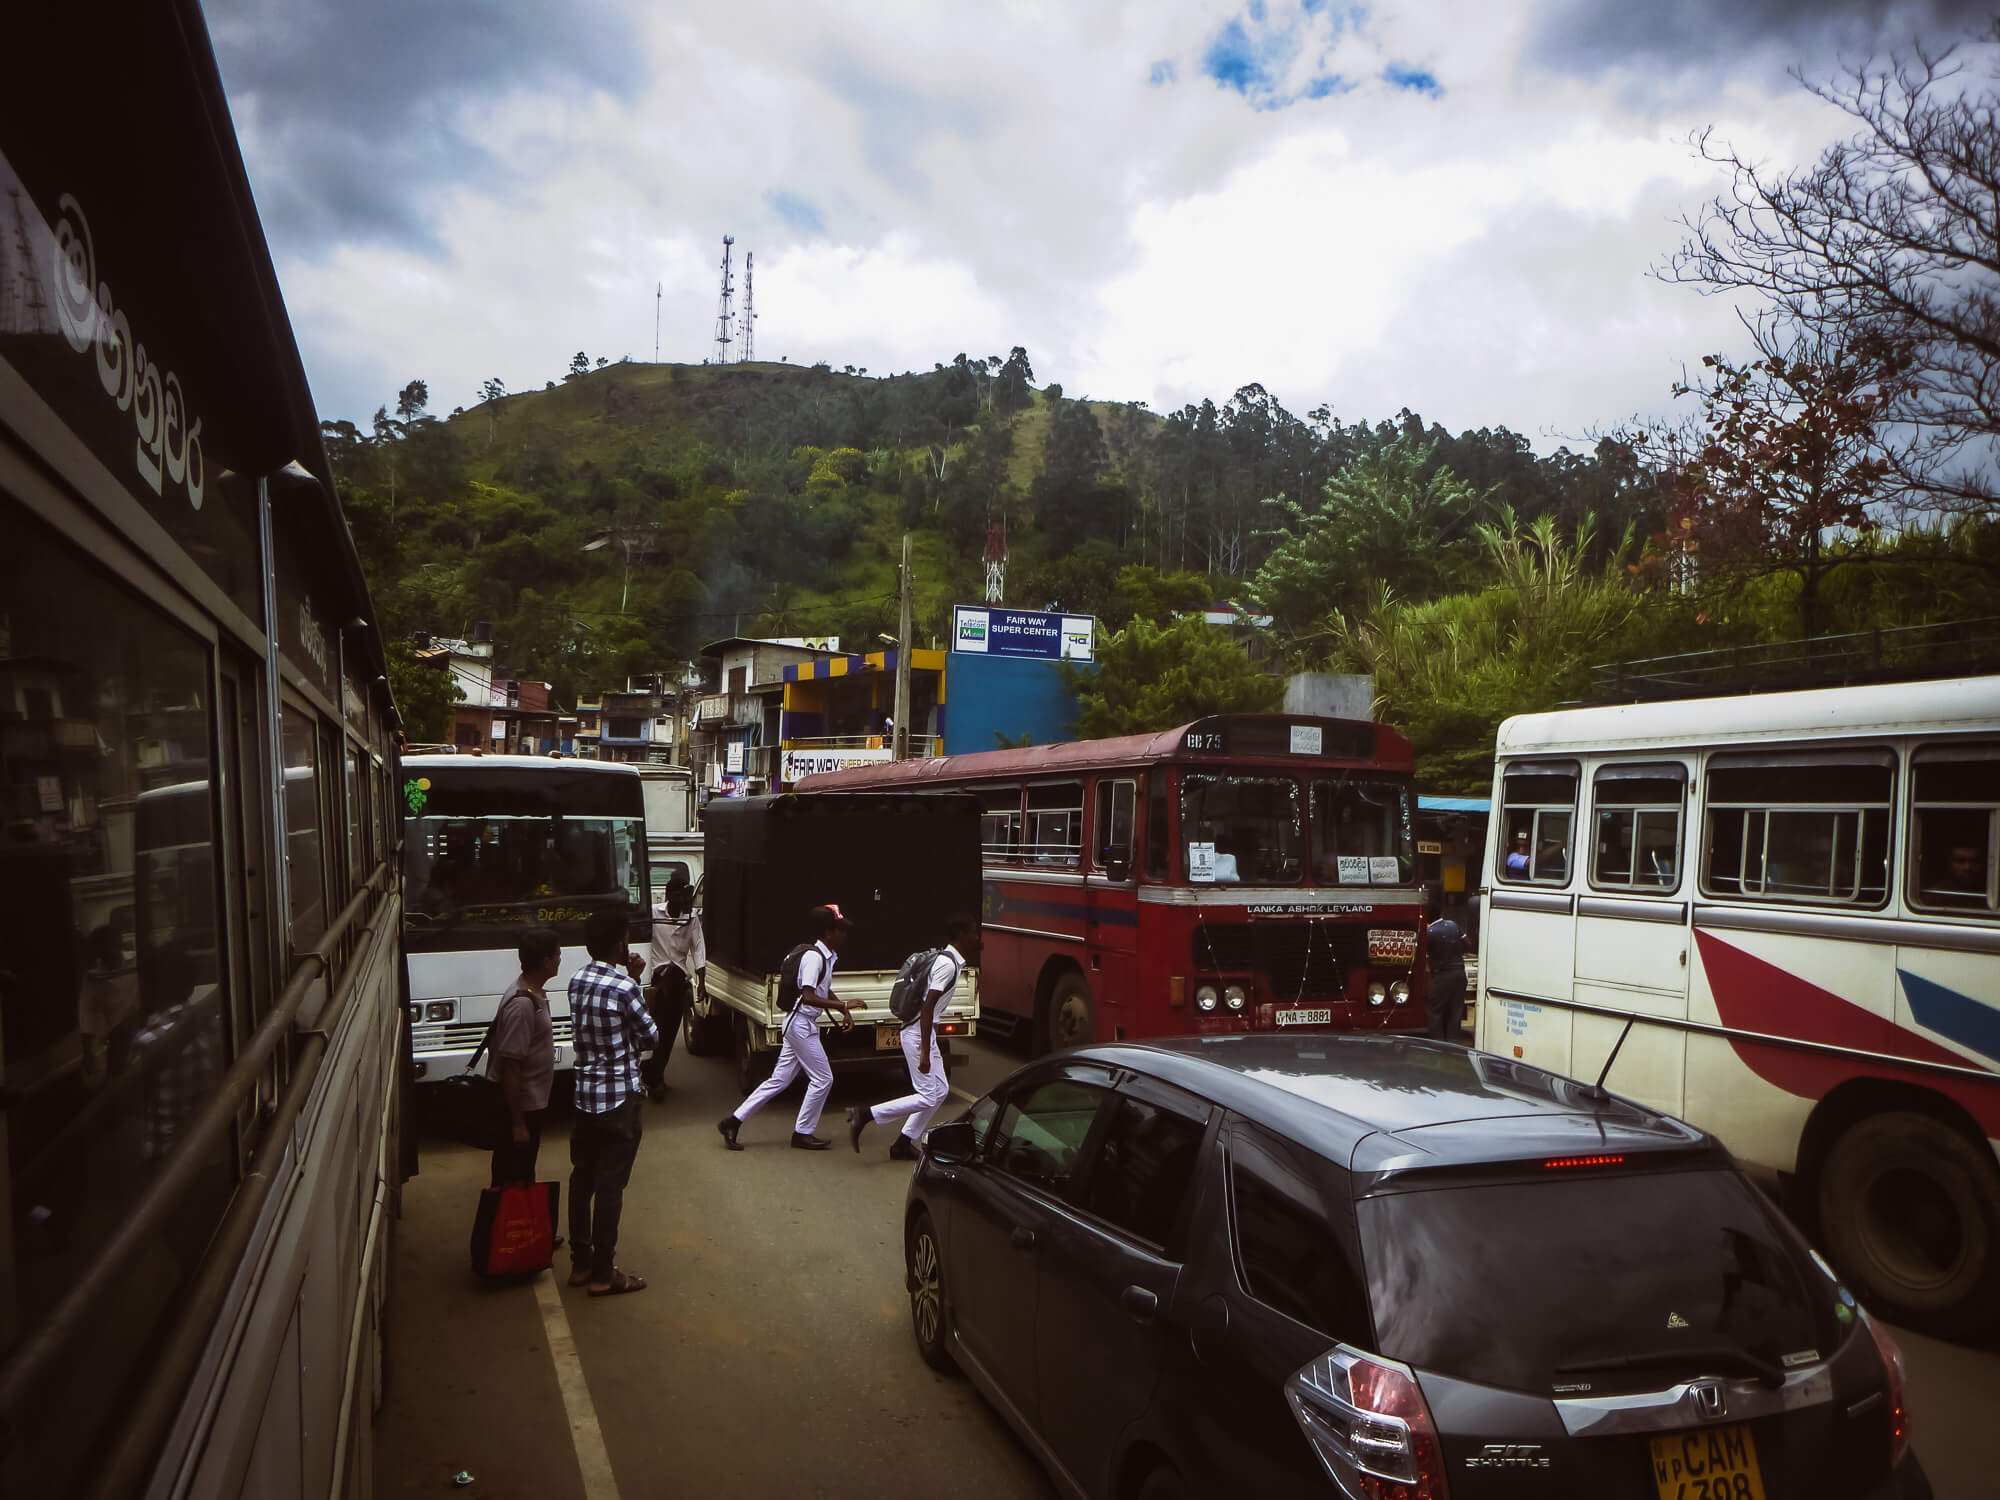 Several public transport buses in Sri Lanka on a busy city road